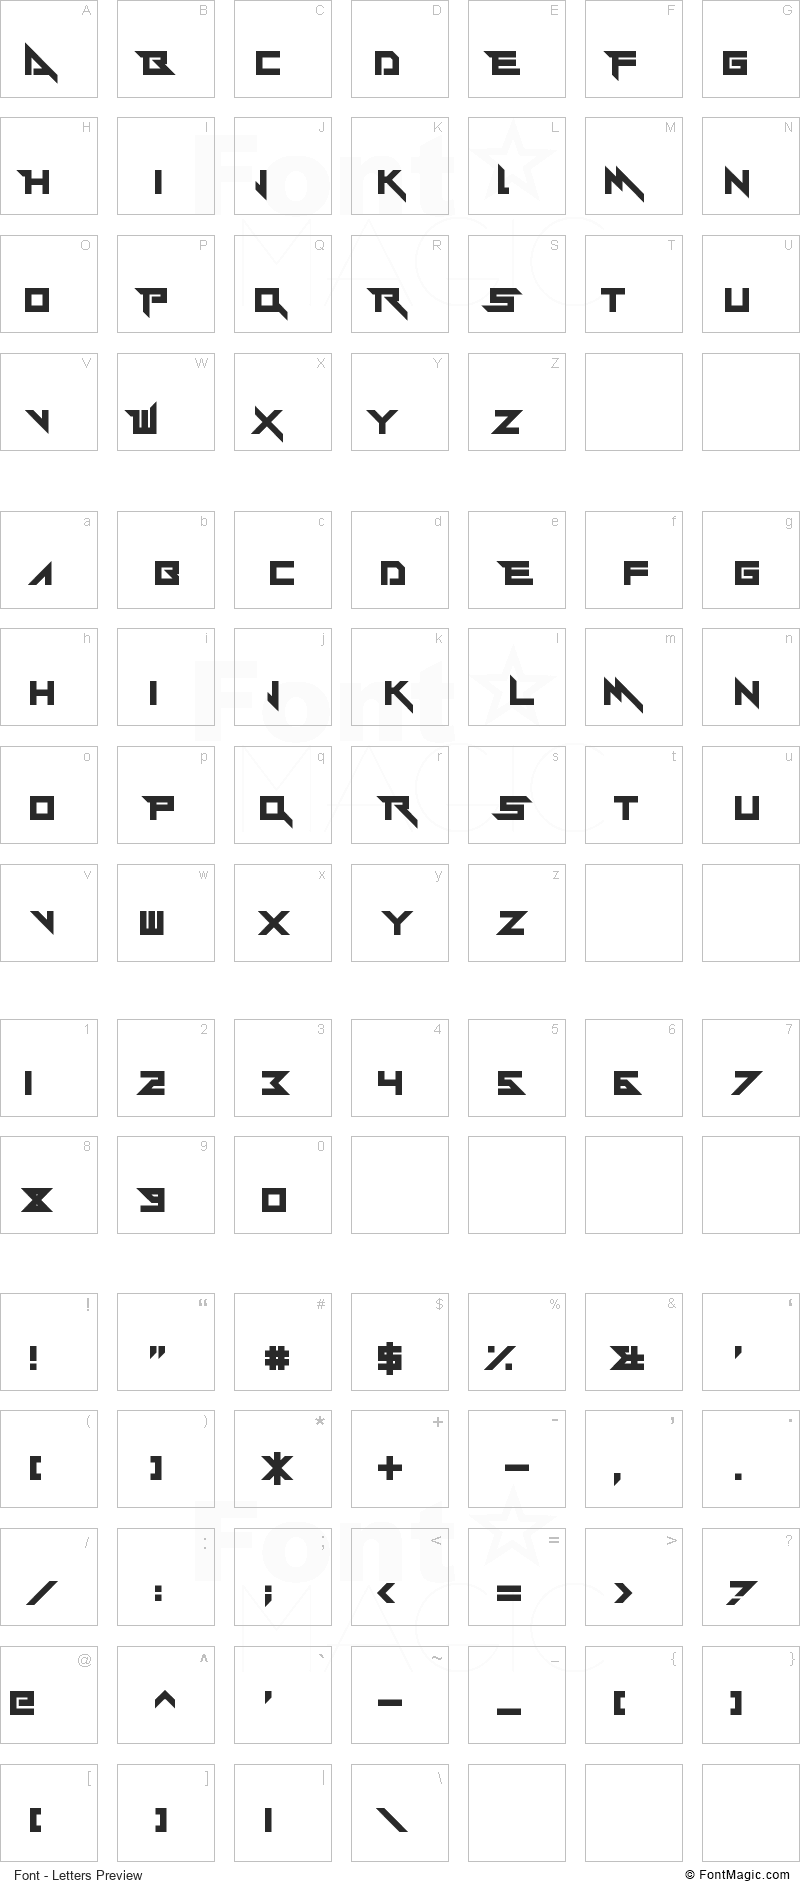 Y-Andermo Font - All Latters Preview Chart